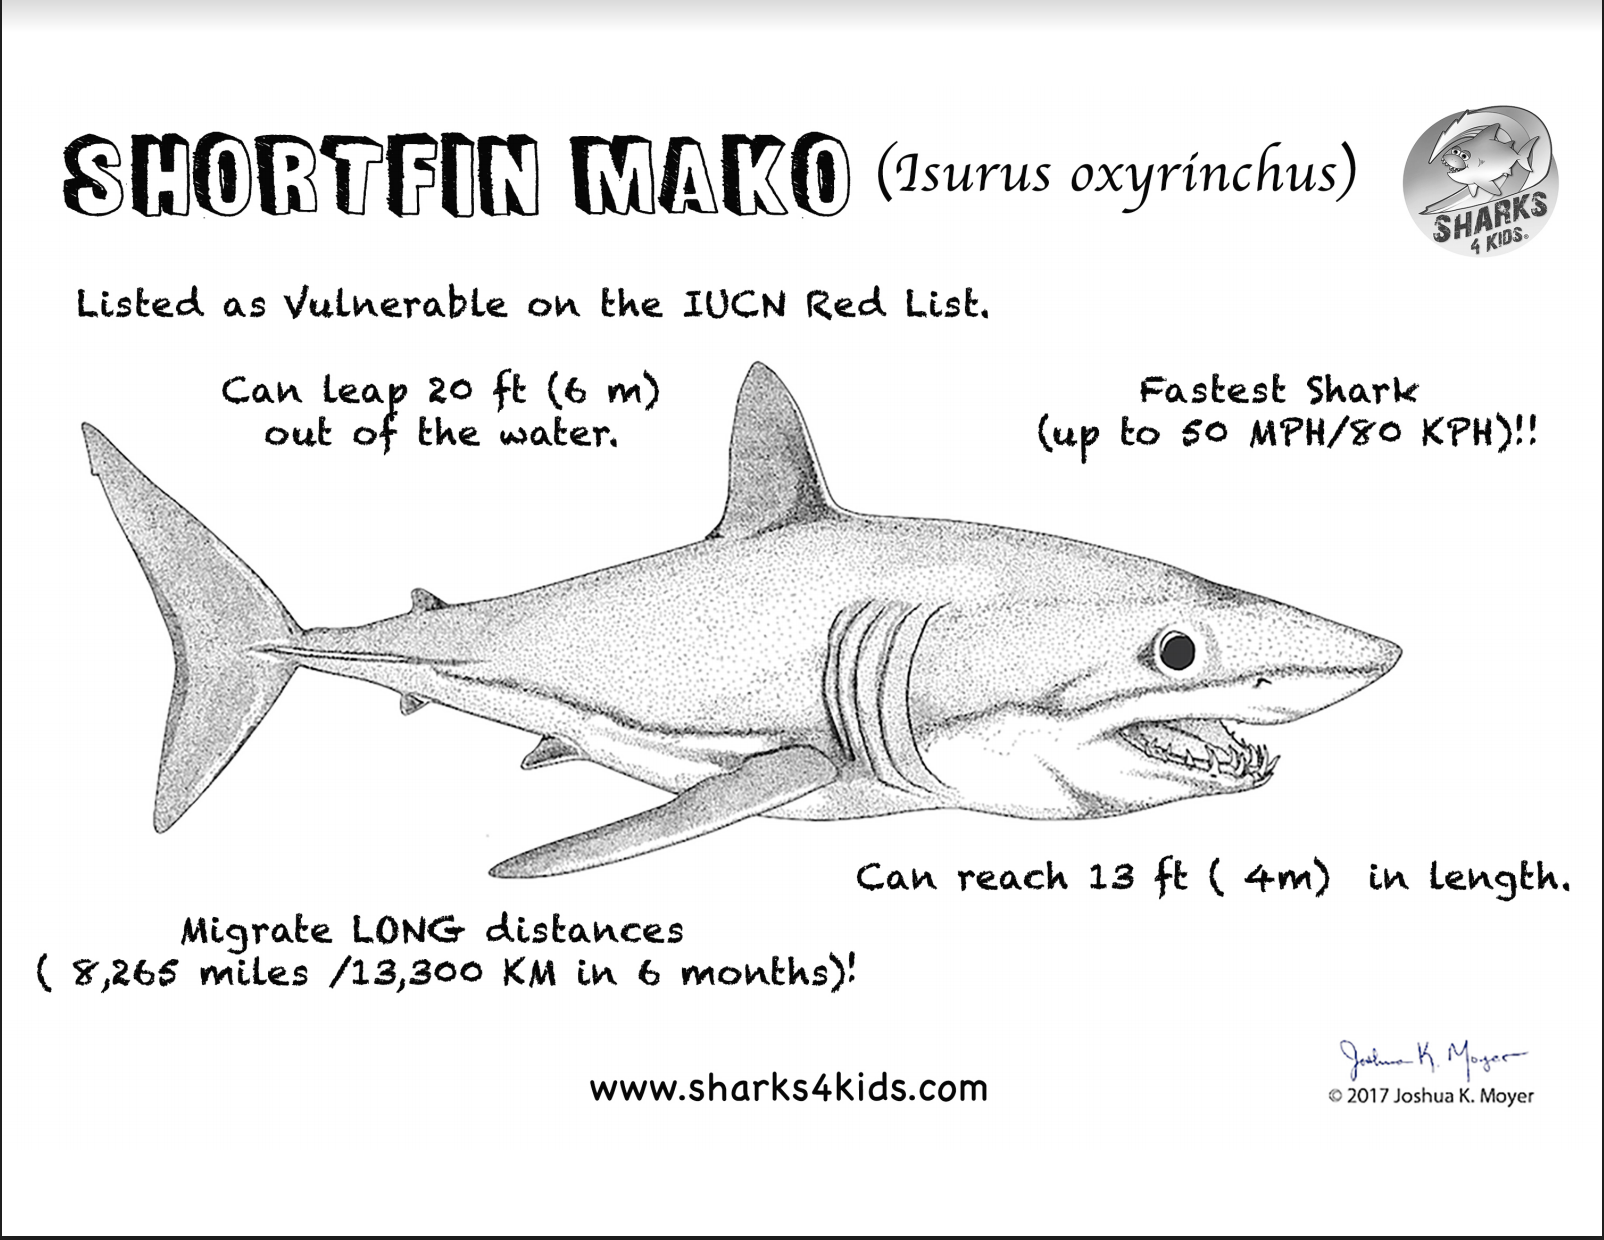 Sharks4kids Learn All About The Shortfin Mako Shark With